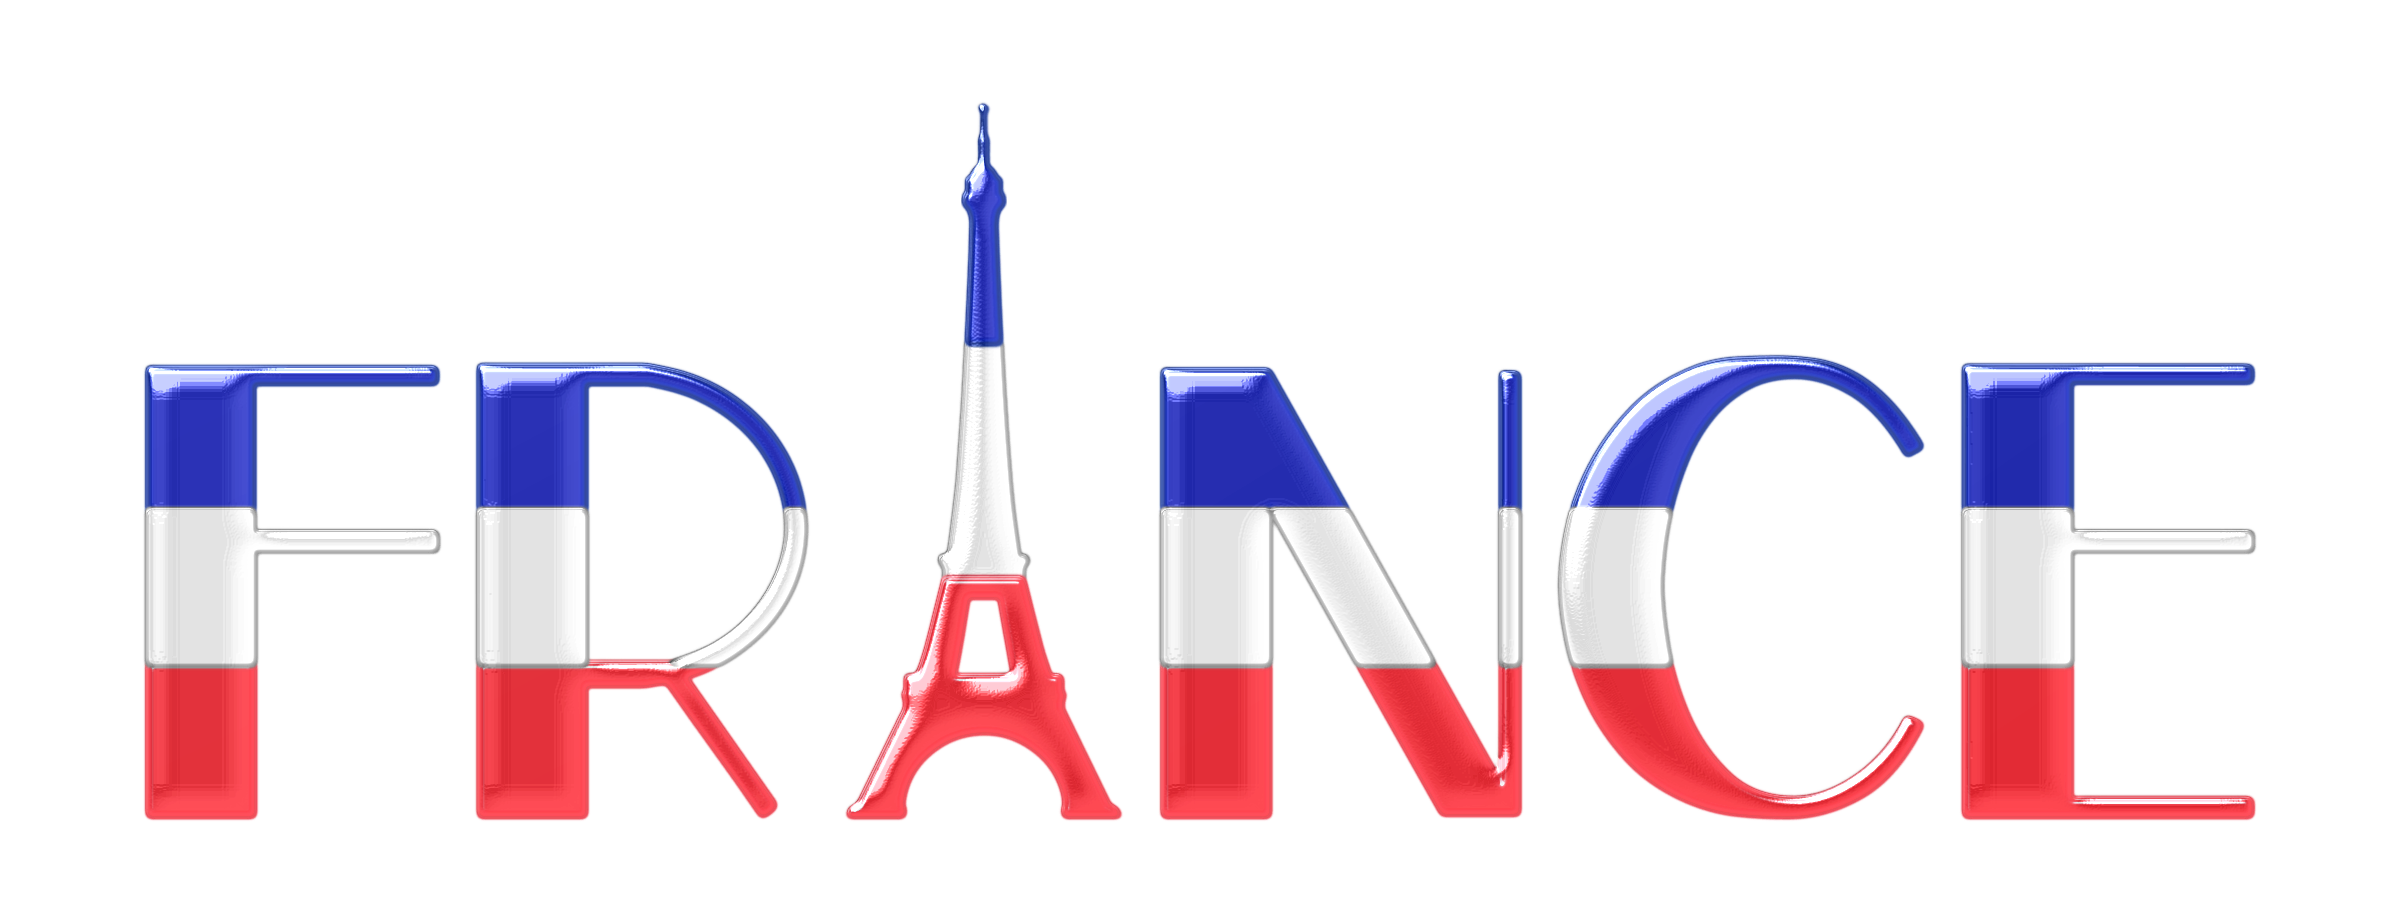 Typography enhanced icons png. France clipart fractal